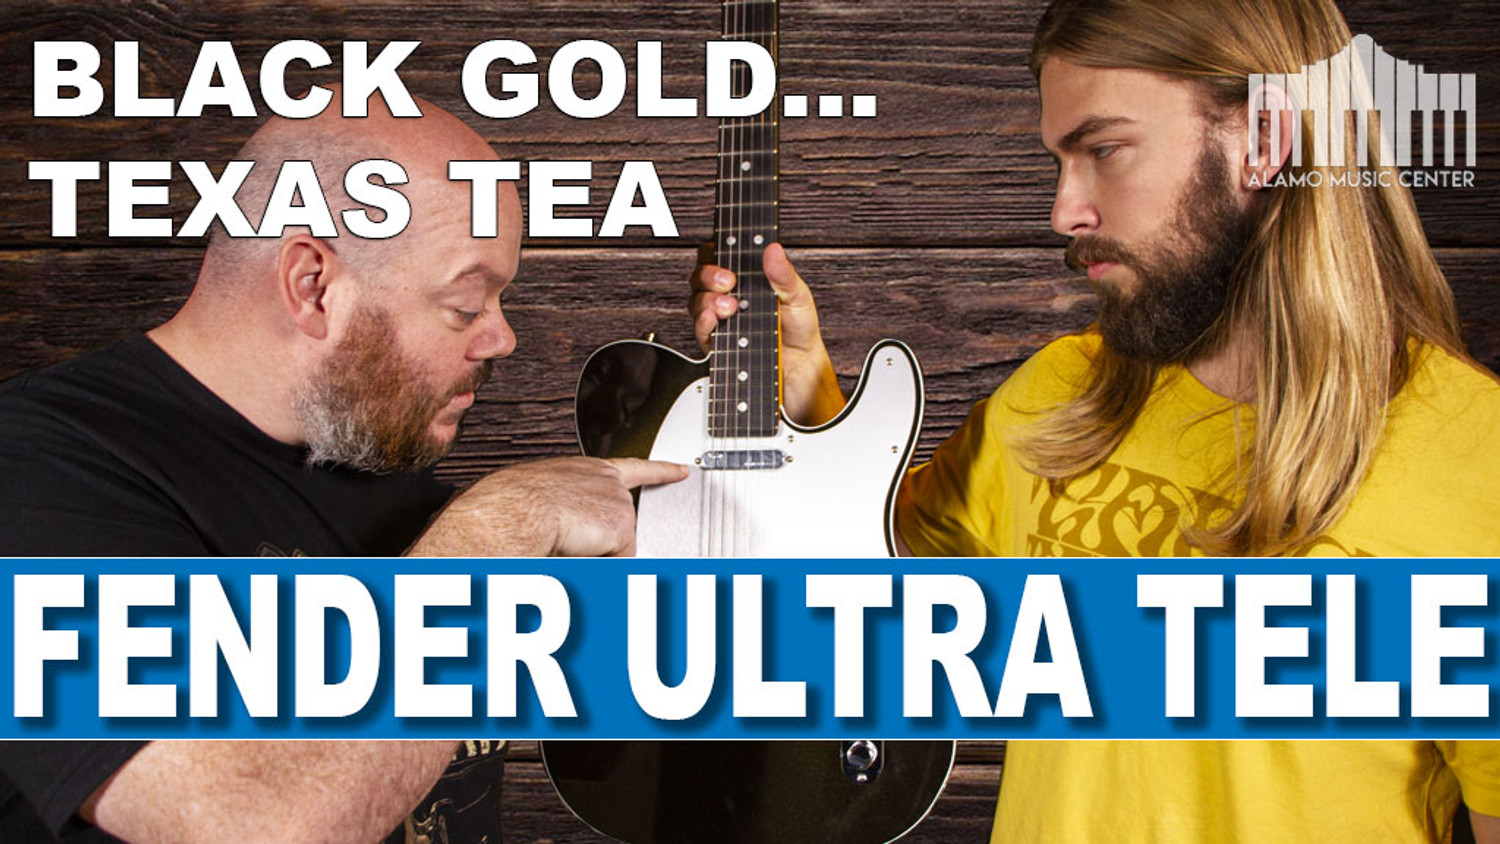 Fender American Ultra Telecaster In depth Review - Black Gold... Texas Tea!